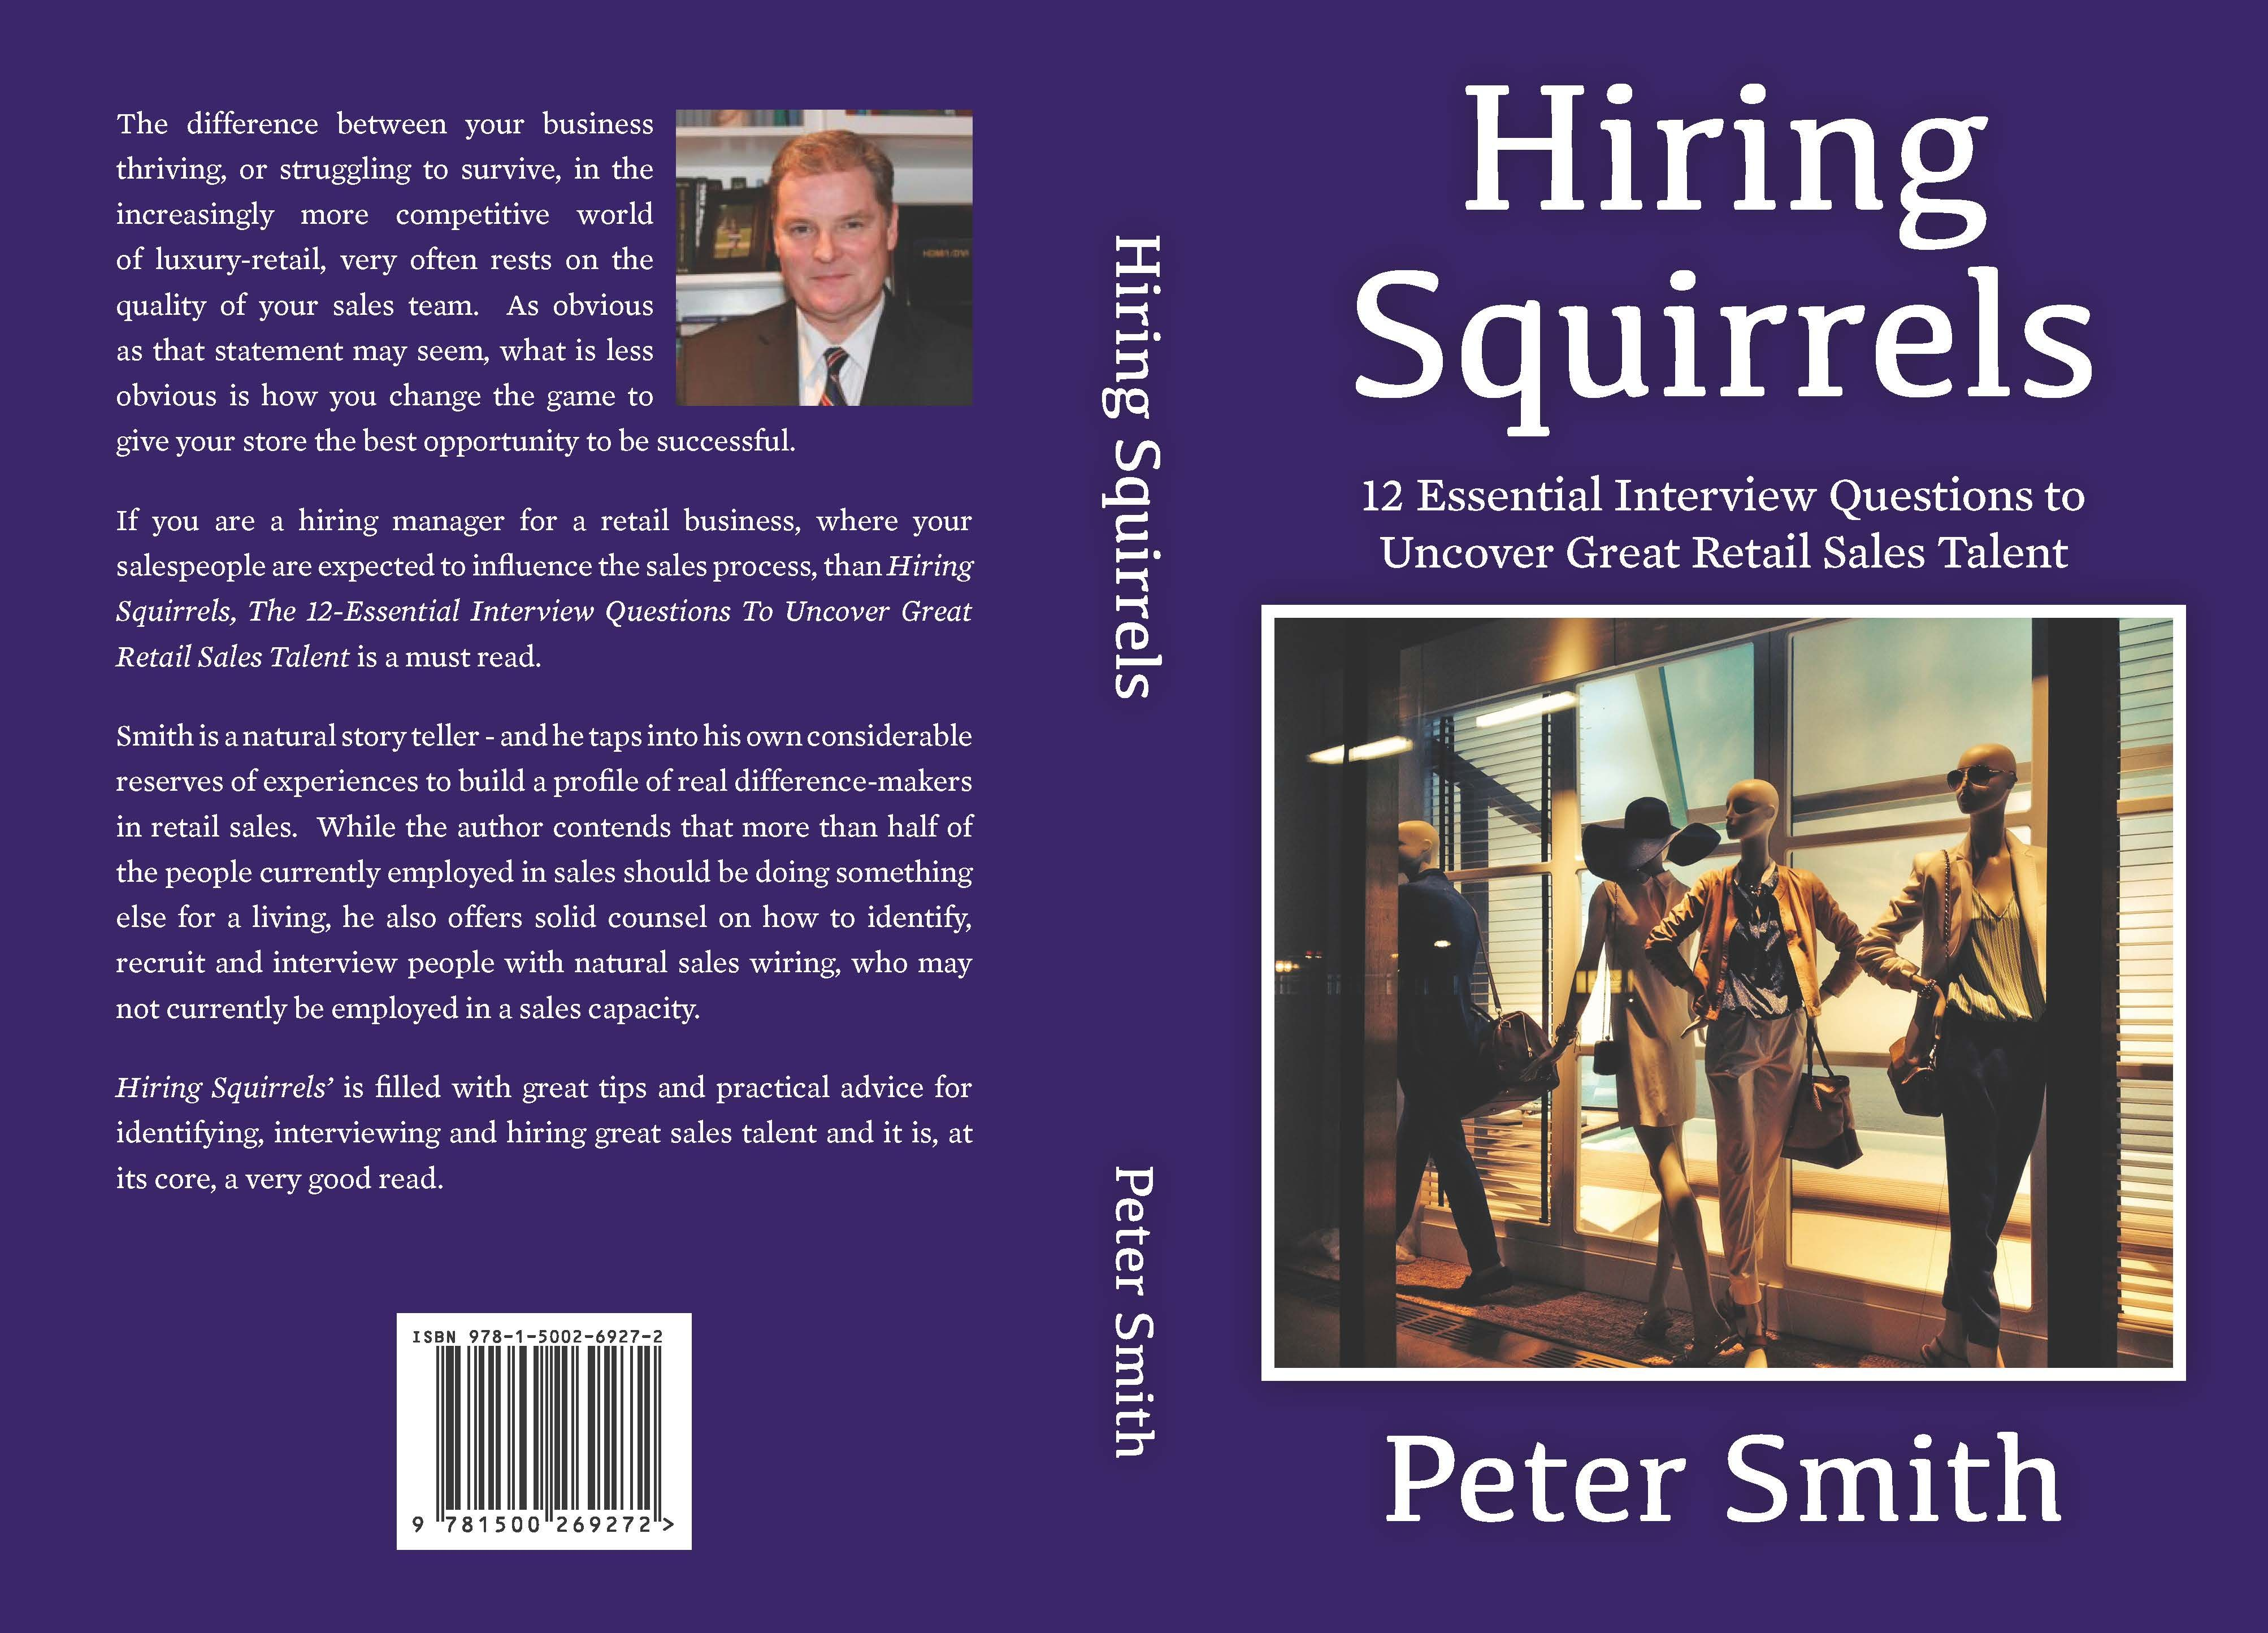 Hiring Squirrels - 12 Essential Interview Questions To Uncover Great Retail Sales Talent by Peter Smith